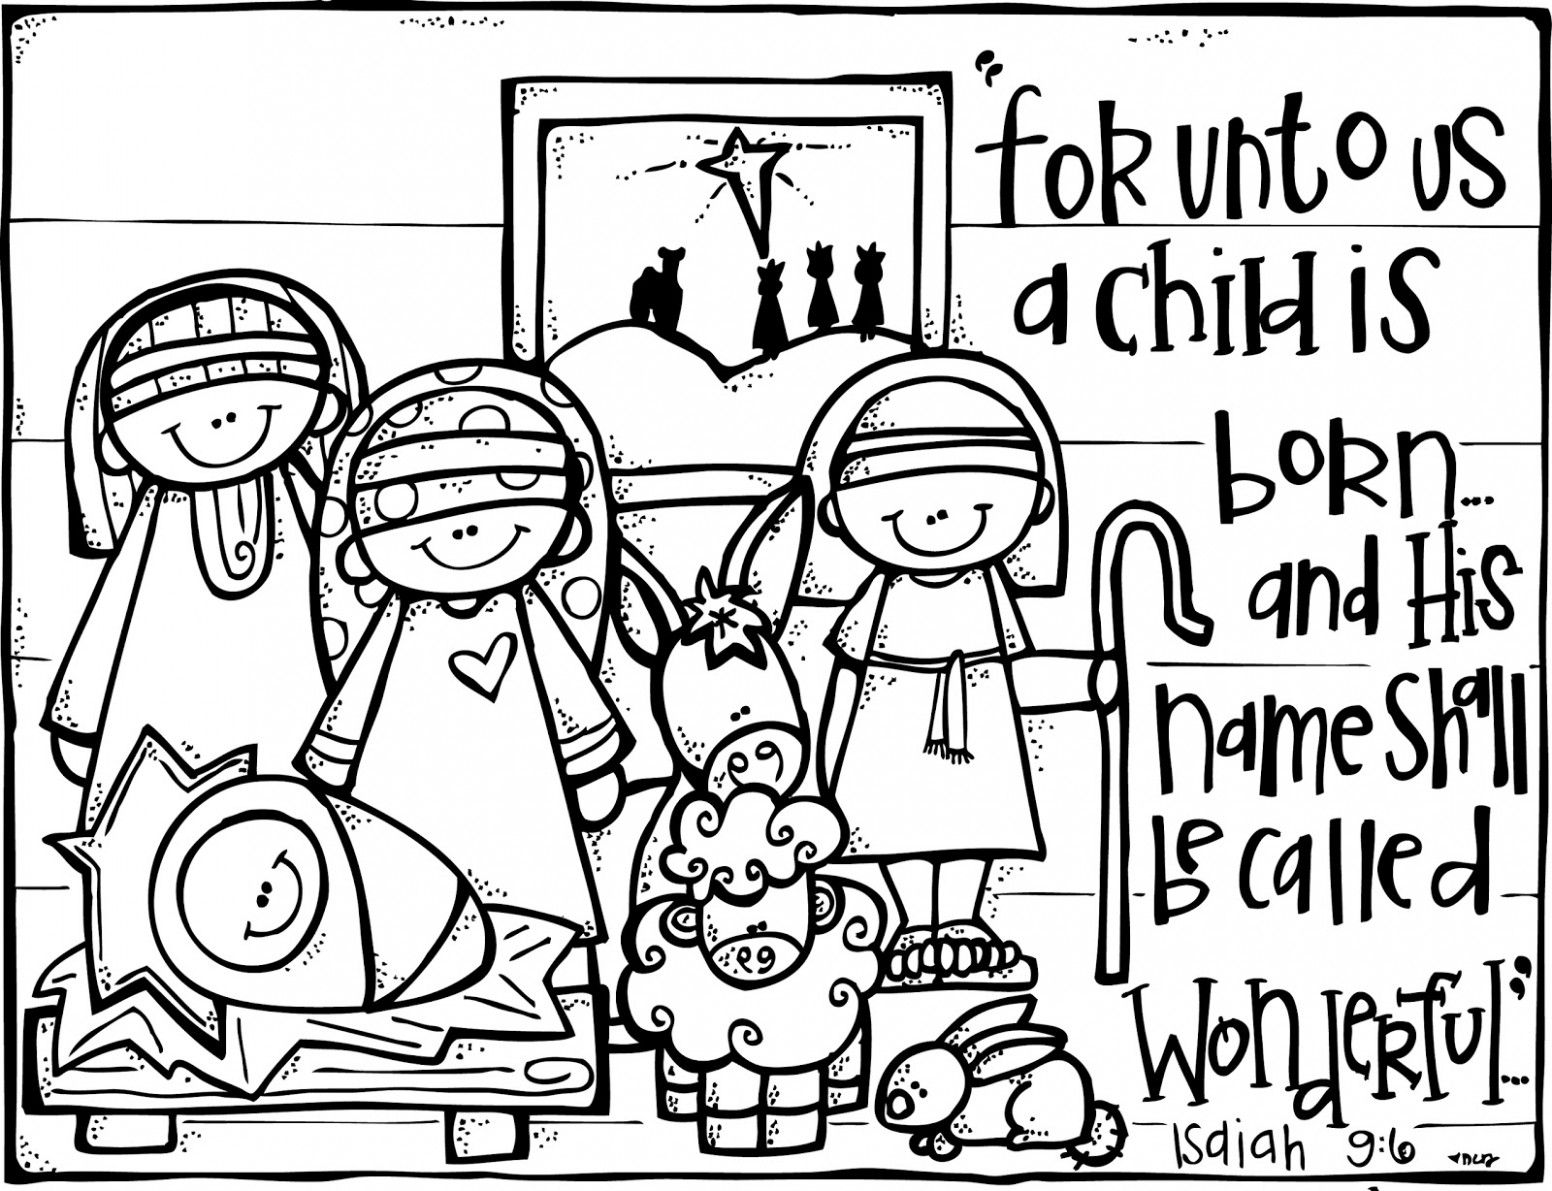 Free Printable Nativity Coloring Pages For Kids Best Nativity Coloring Pages Preschool Christmas Christian Christmas Nativity Coloring